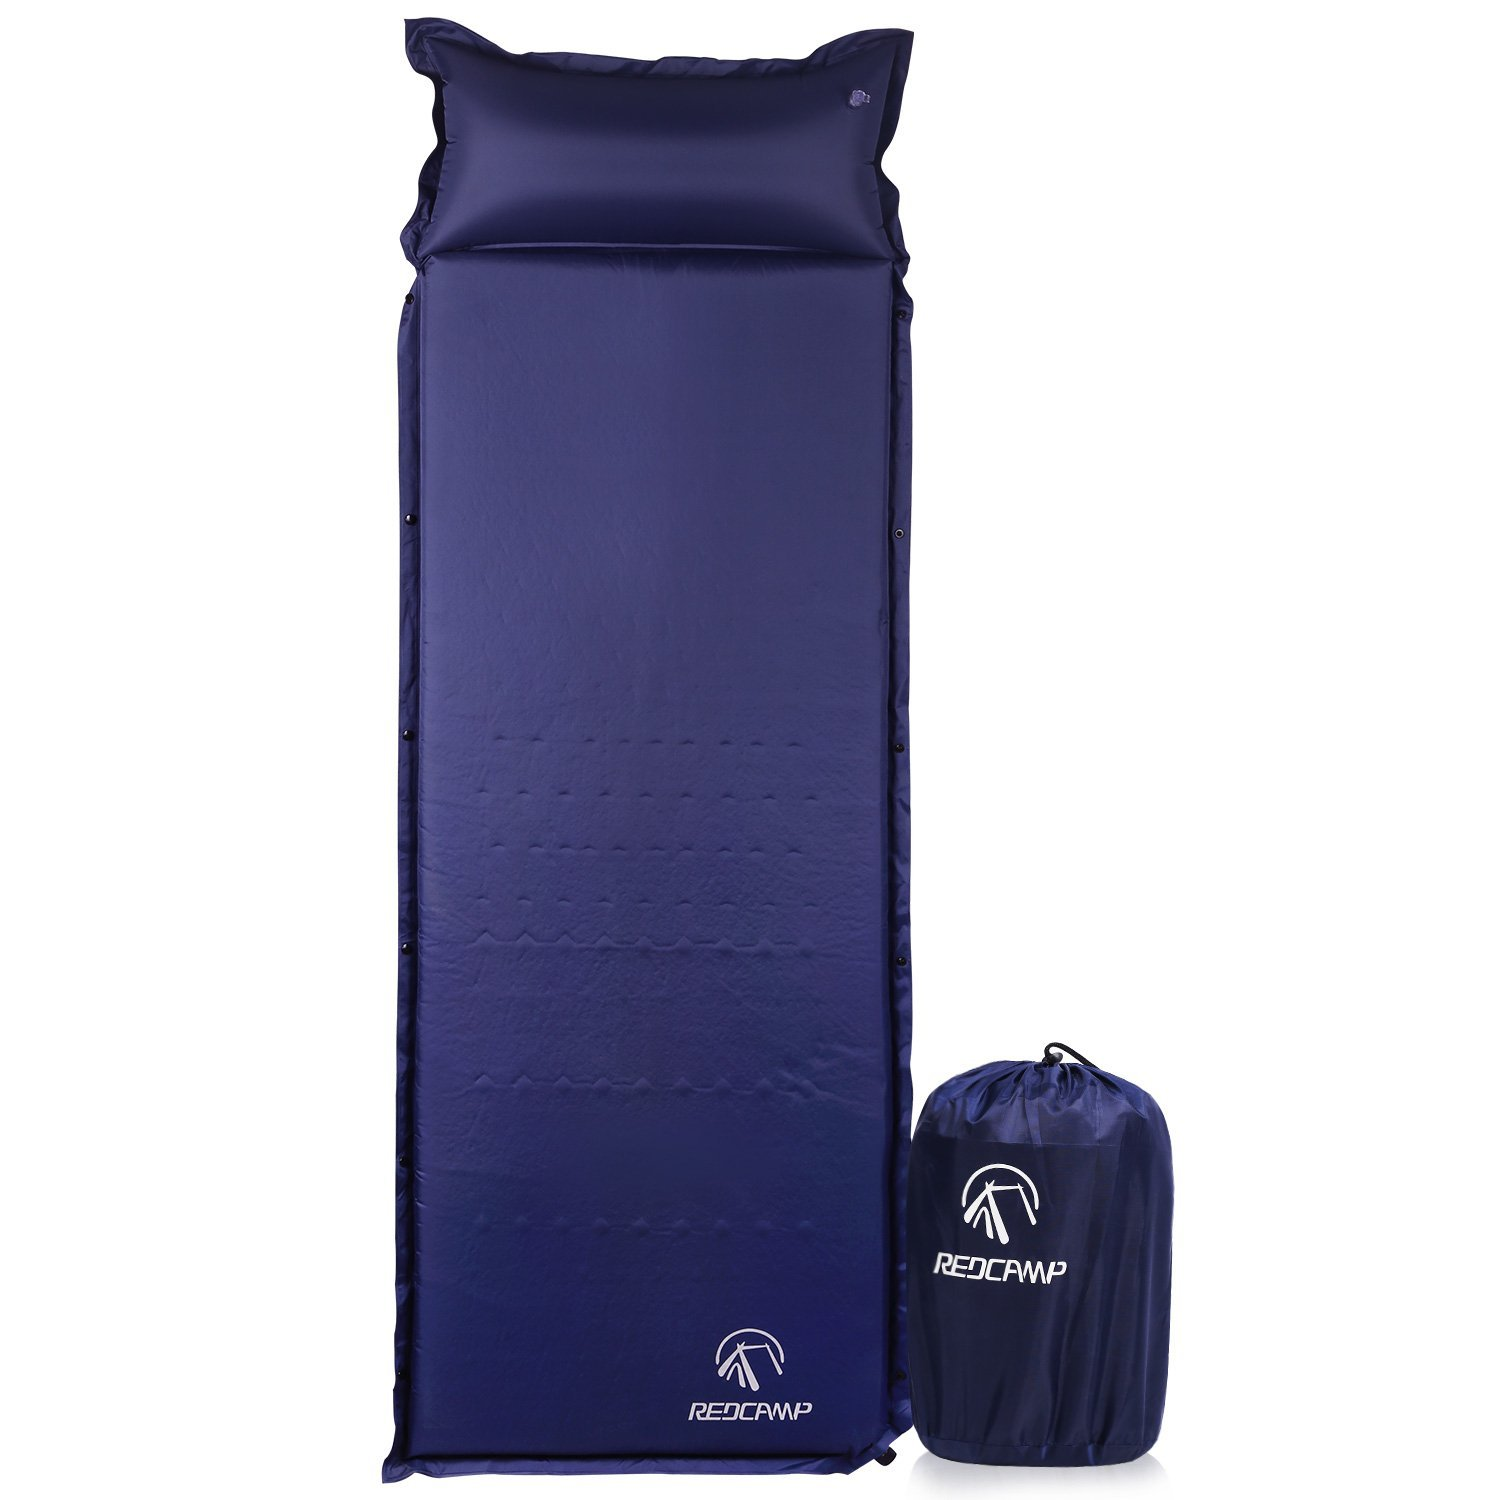 "REDCAMP Self Inflating Sleeping Pad with Attached Pillow, Compact Lightweight Camping Air Mattress with Quick Flow Value,77""x26""x1.2"""